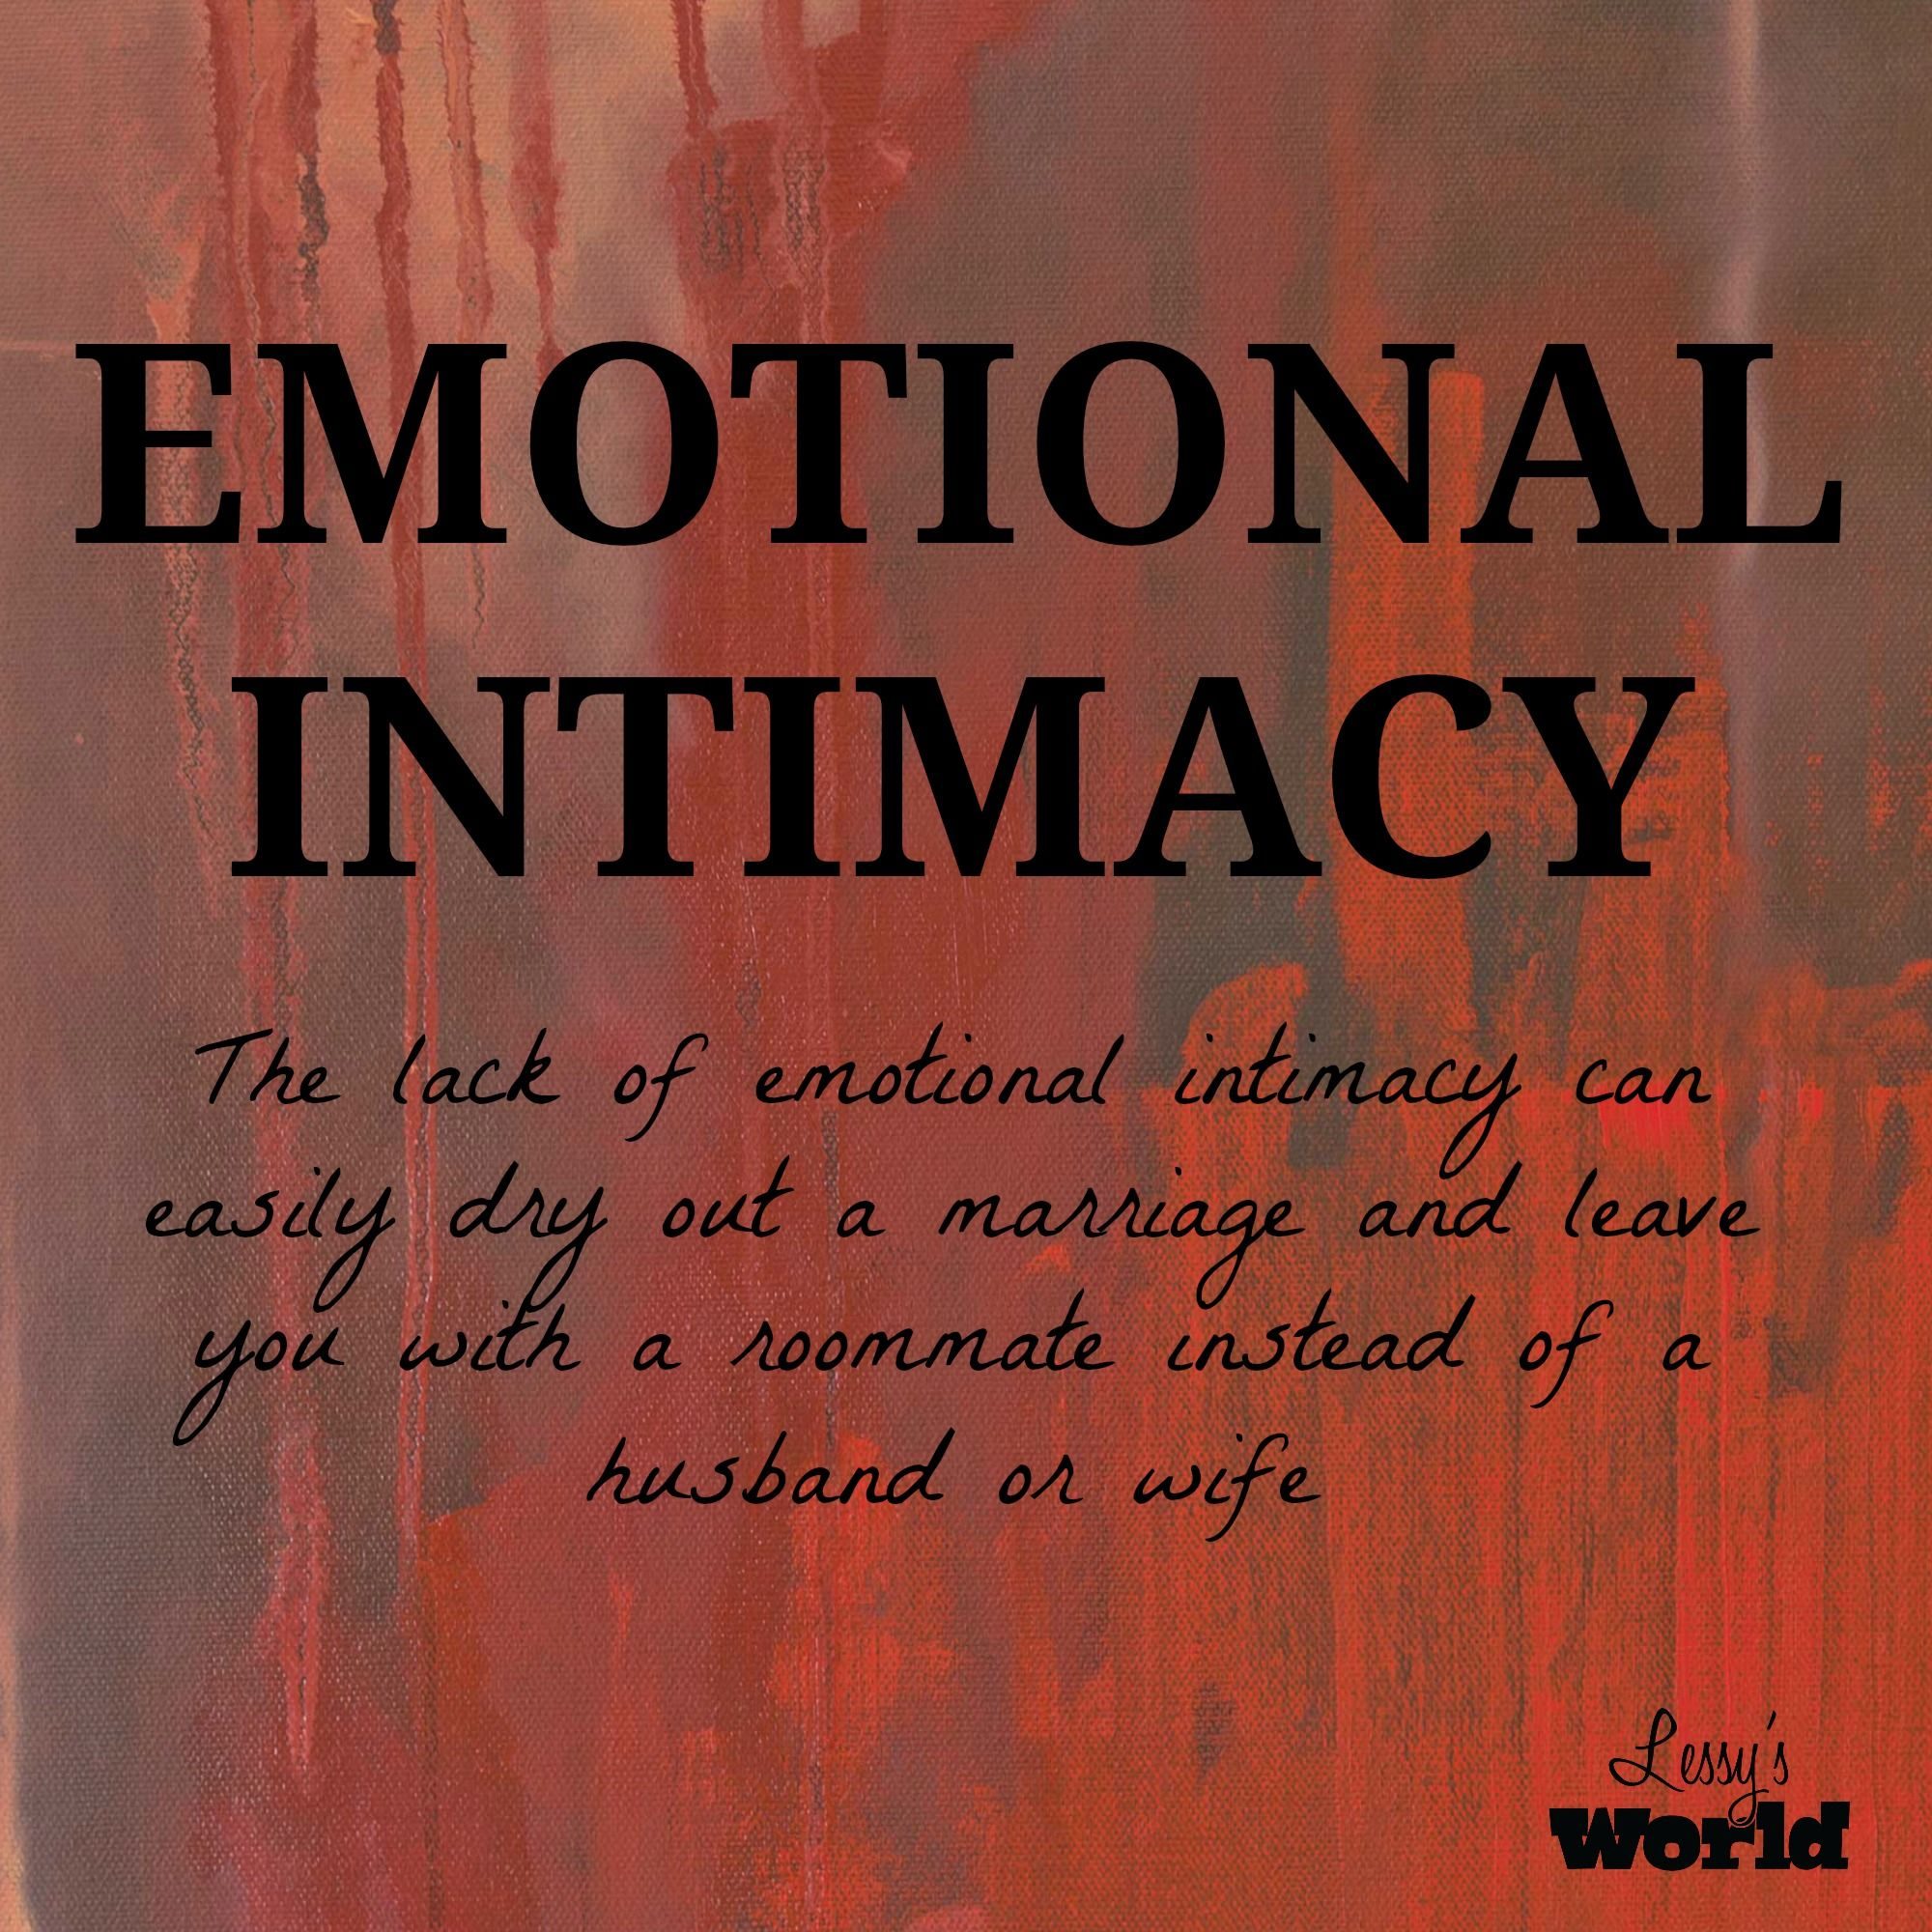 How to get emotional intimacy